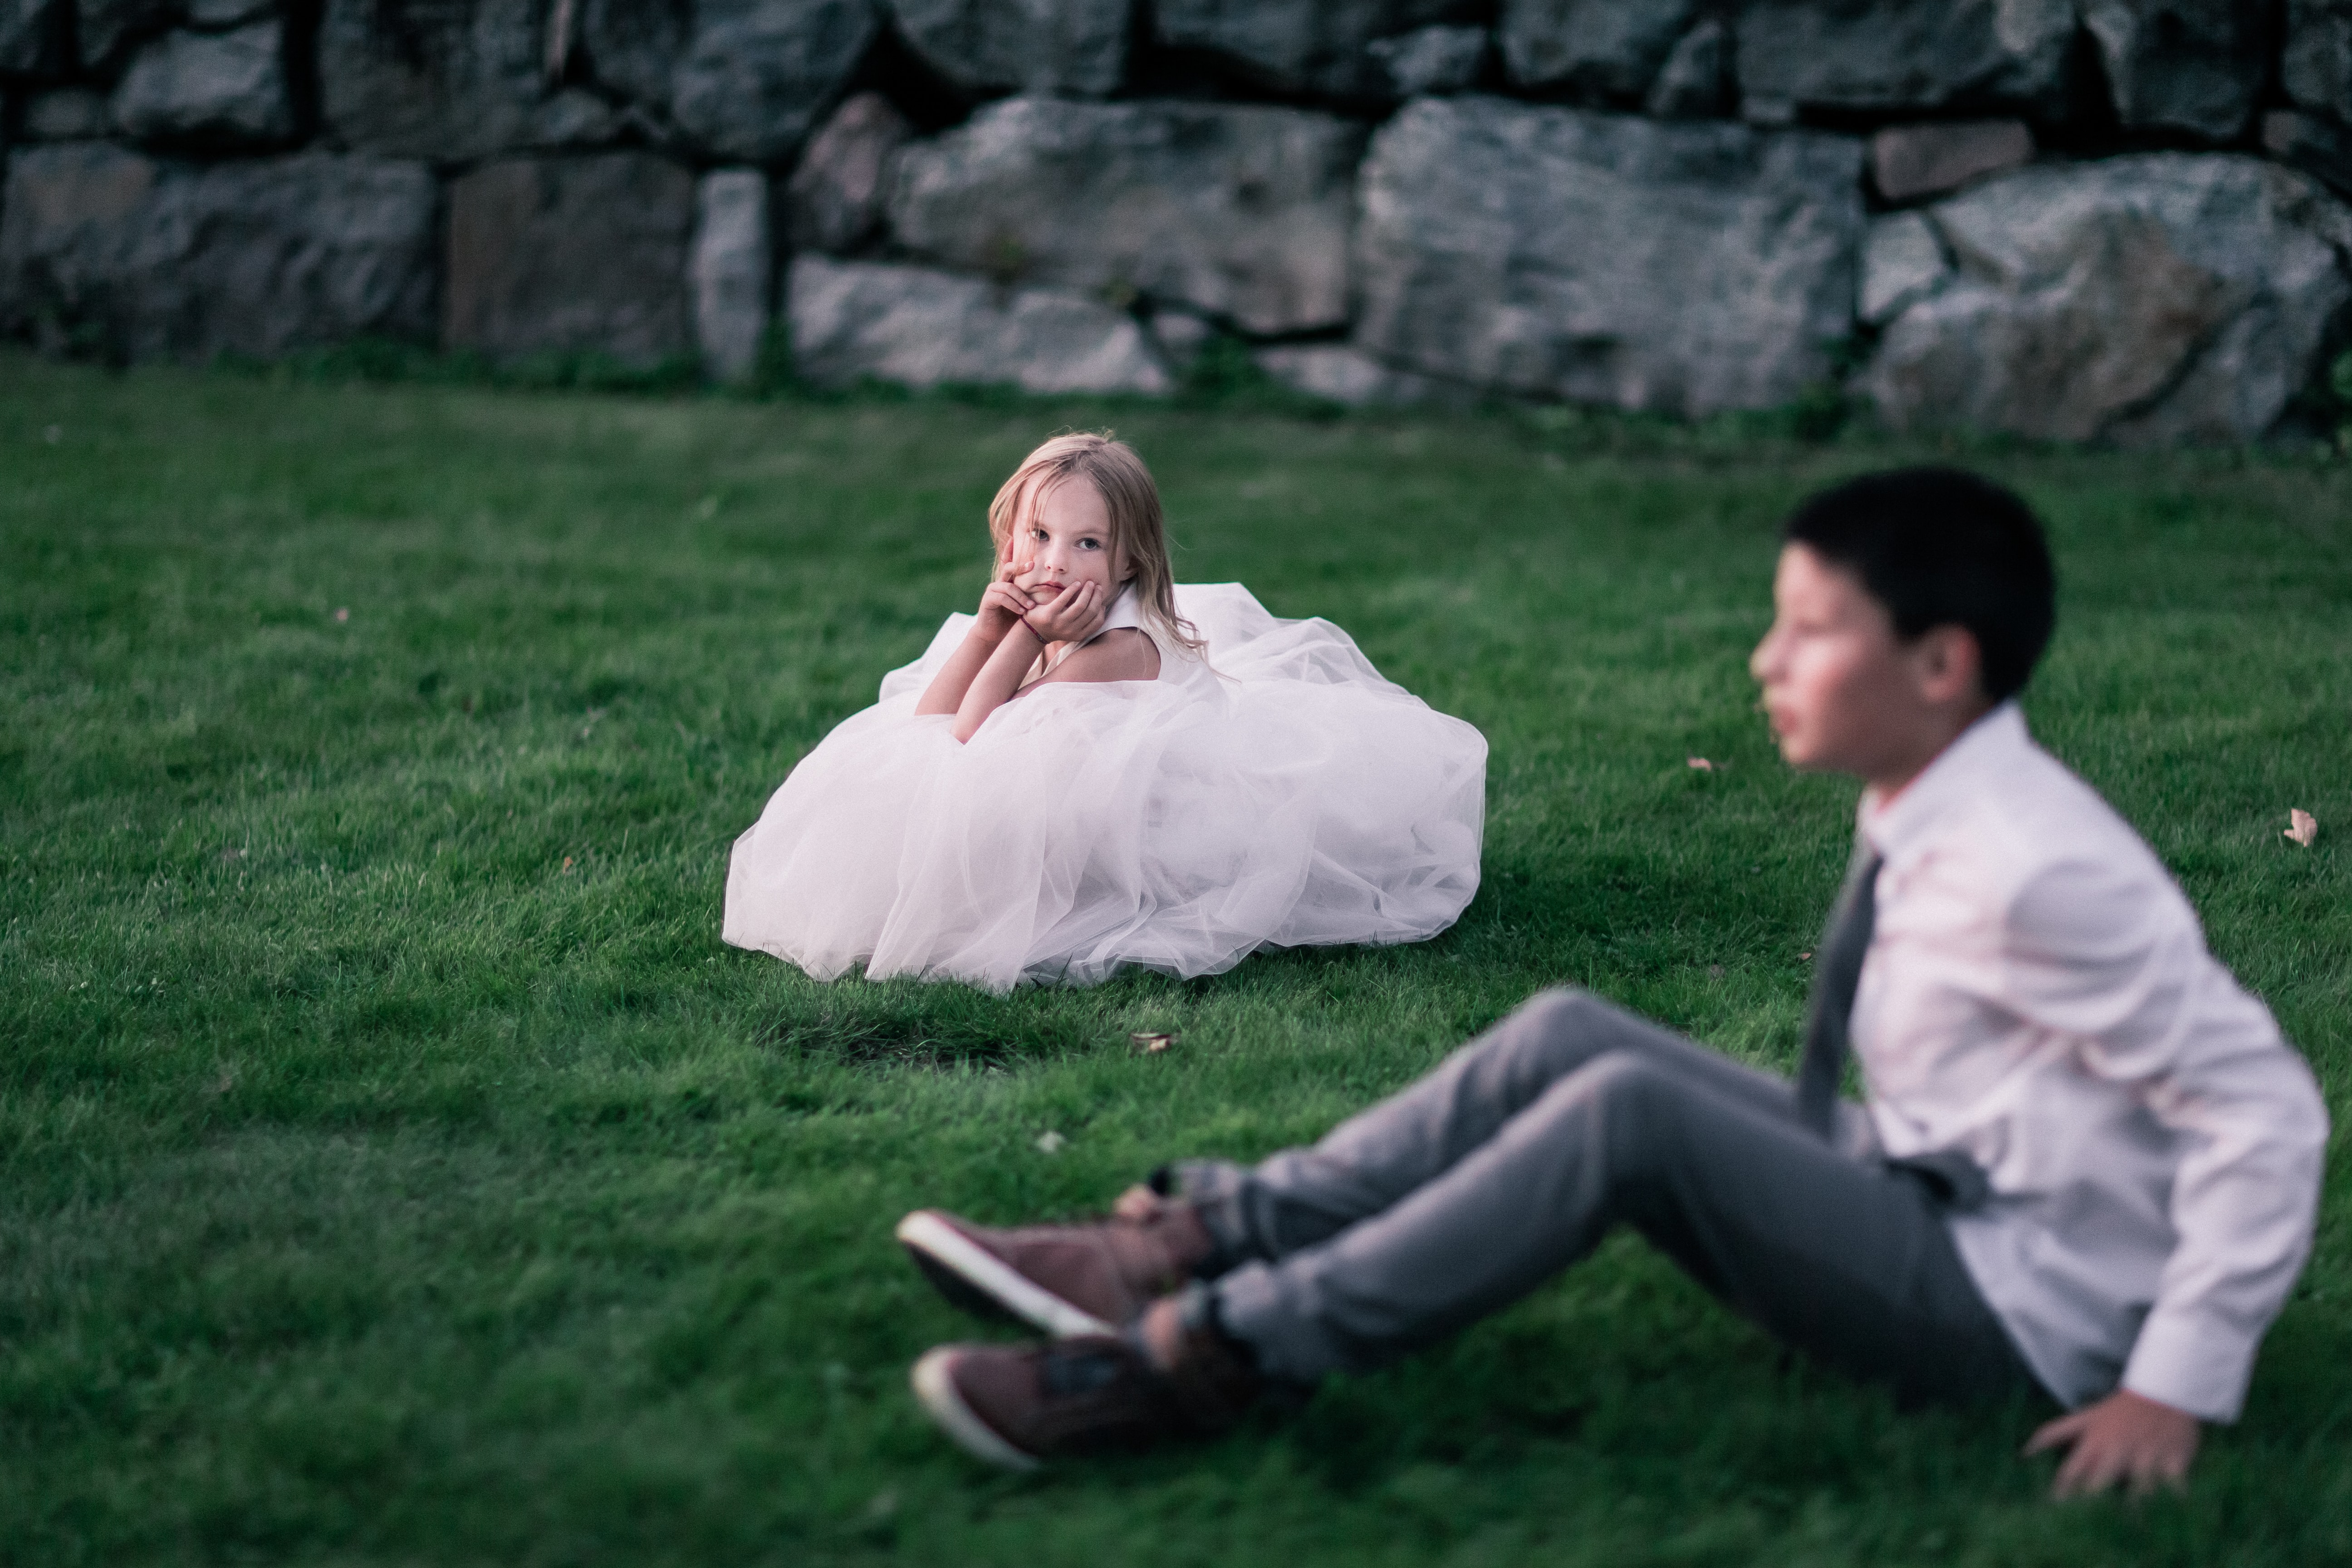 Young girl and boy dressed up in wedding clothes sitting in a field